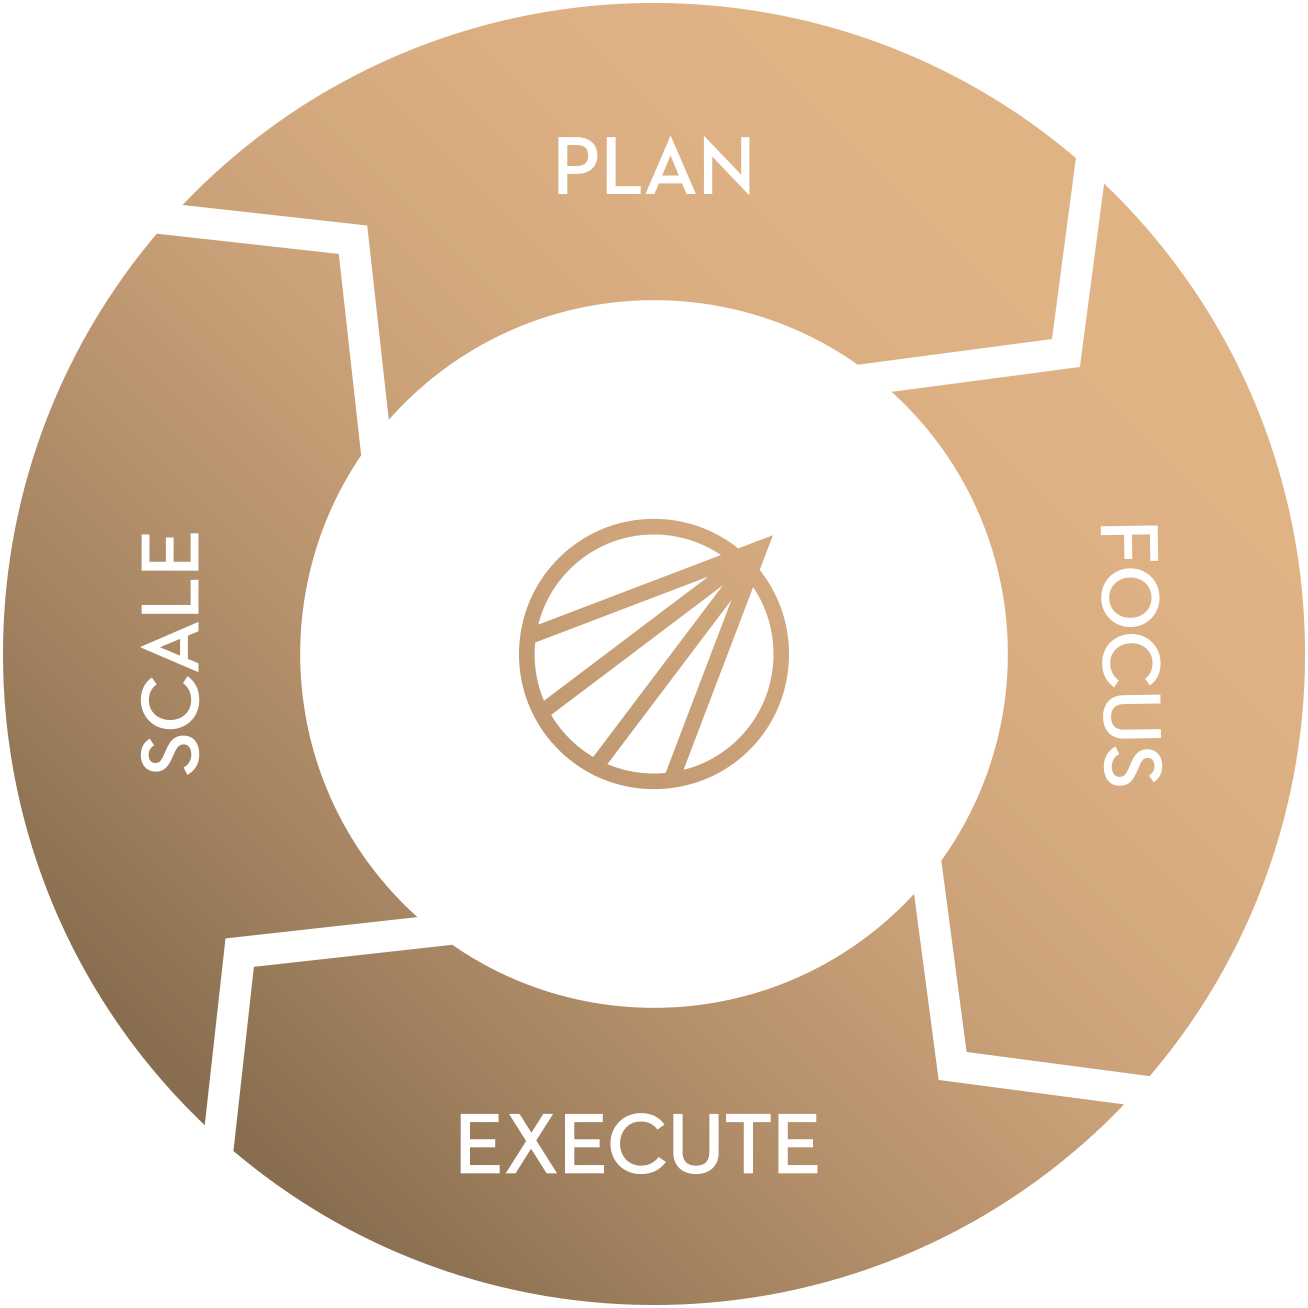 Scale, Plan, Focus, Execute